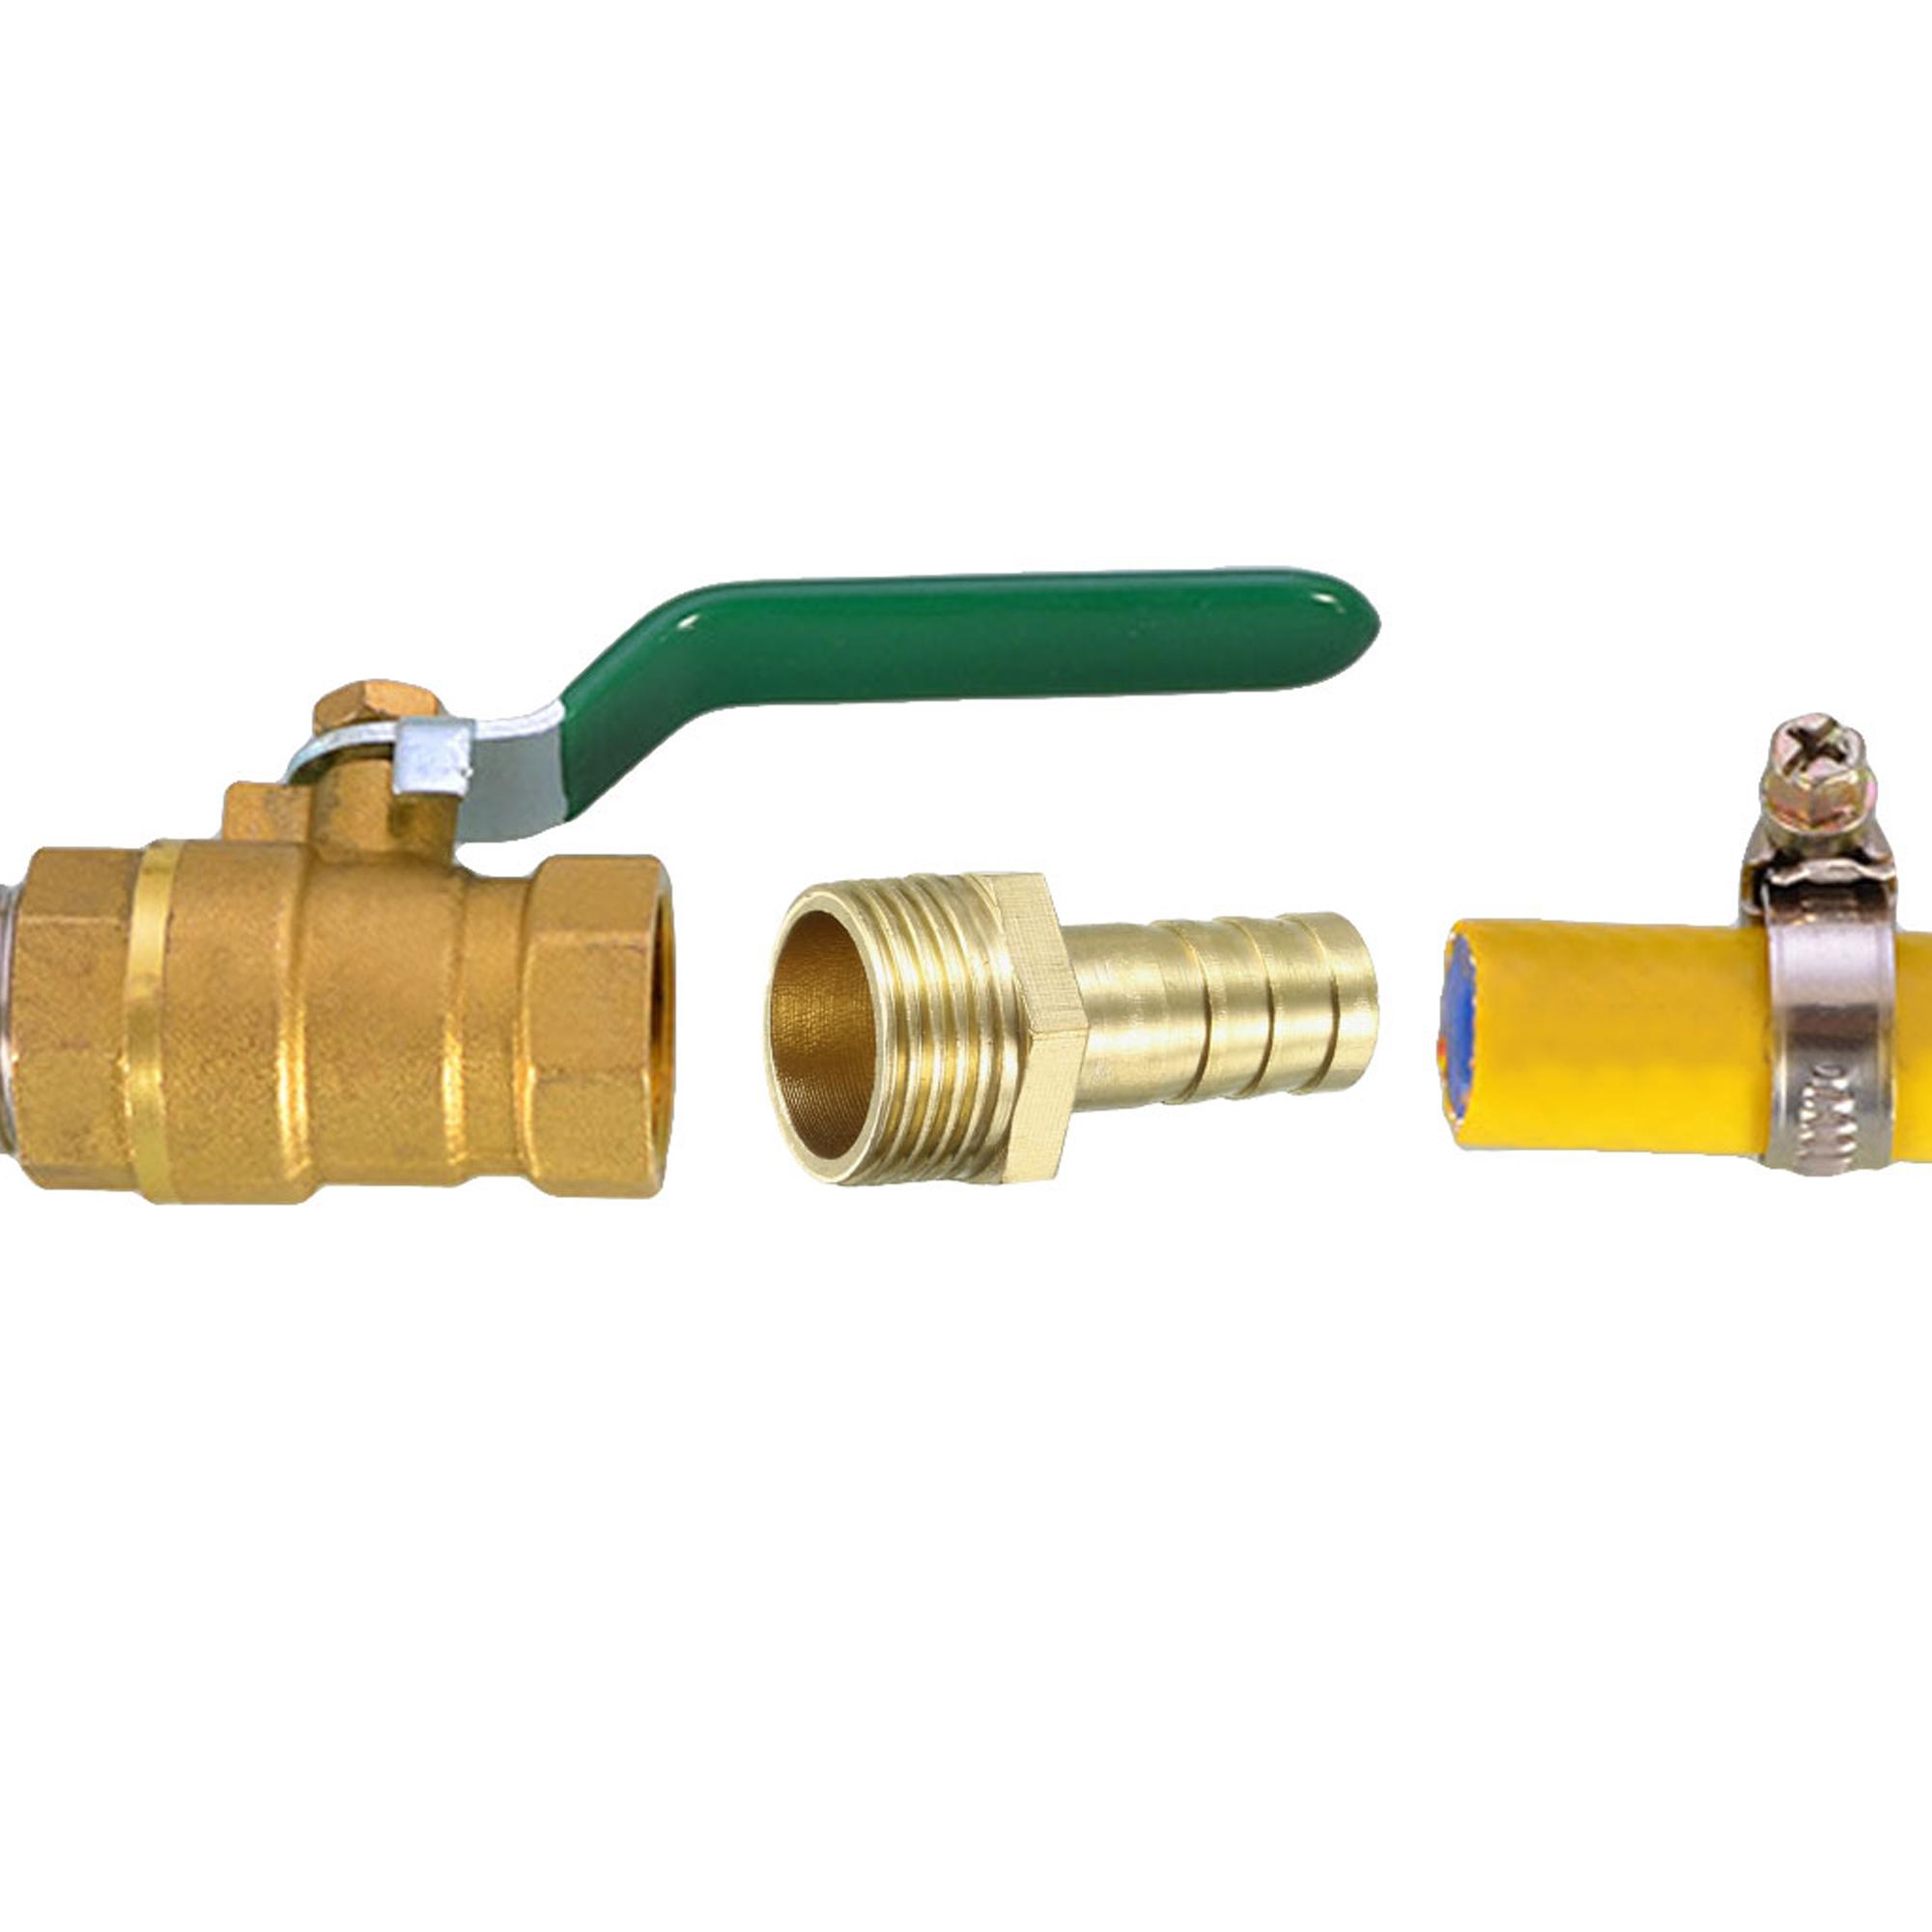 Brass Barb Hose Fitting Connector Adapter 10mm Barbed x 3/8 PT Male Pipe - image 3 of 4